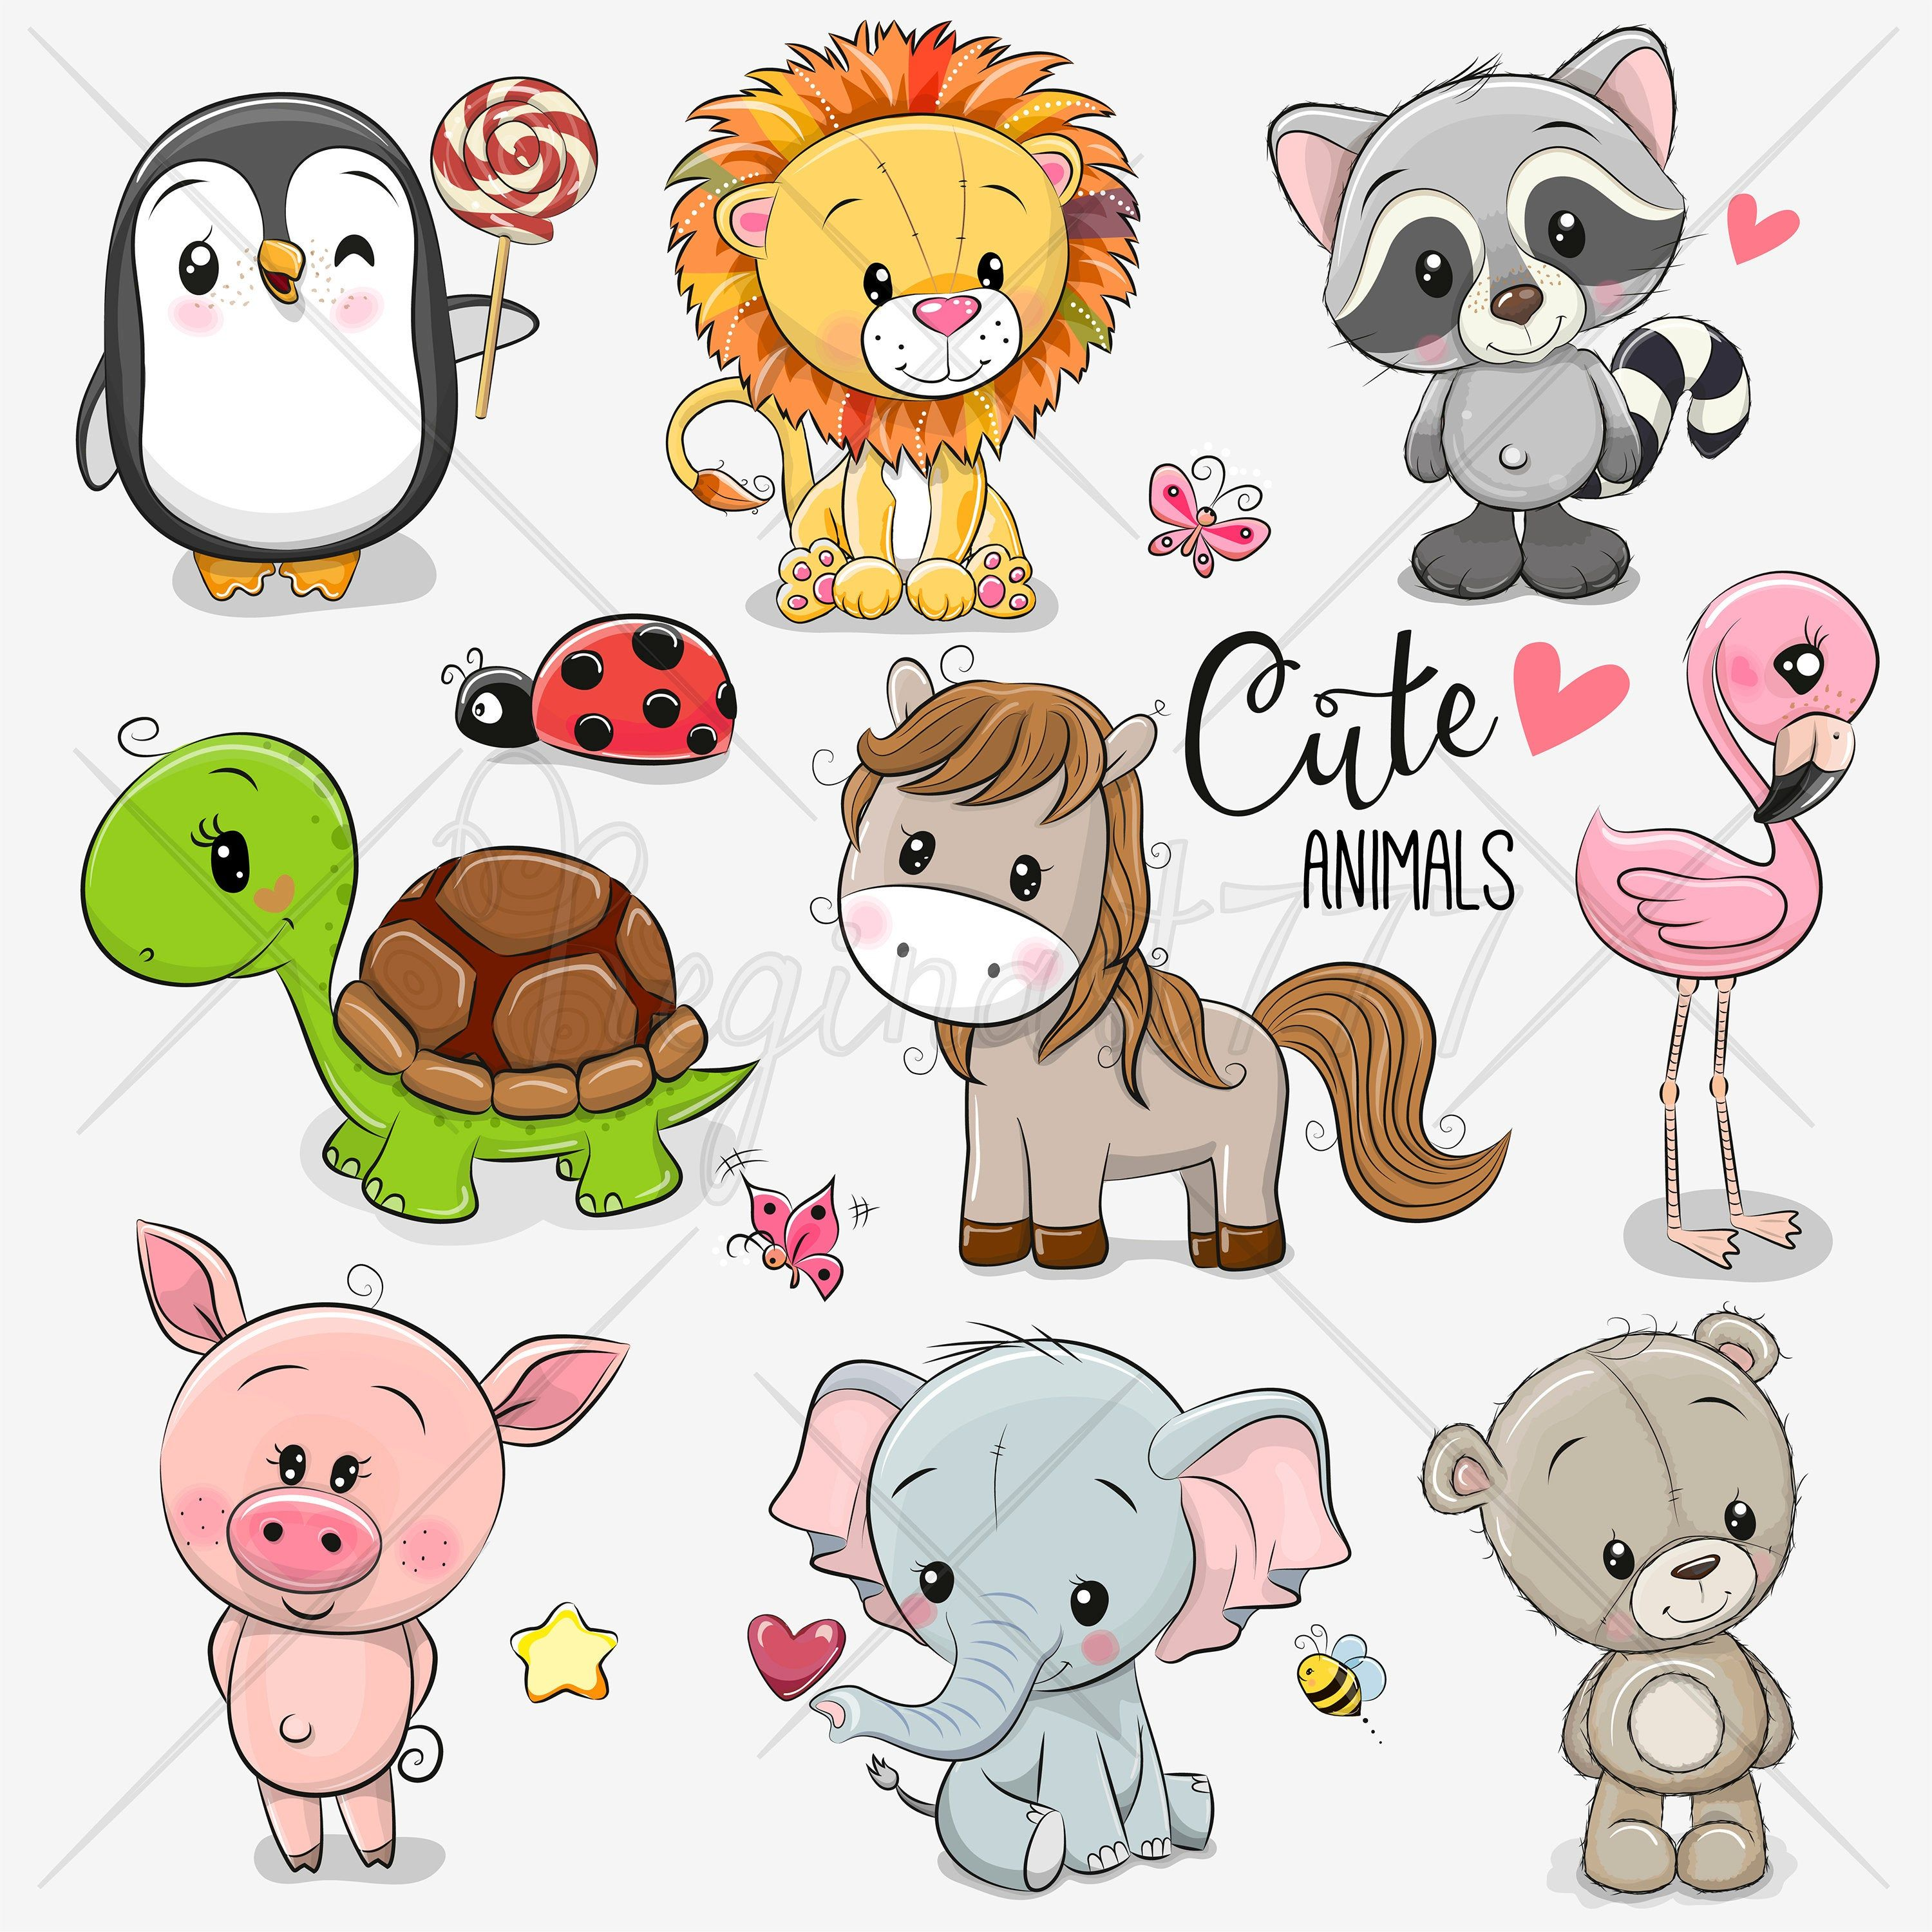 Excited To Share The Latest Addition To My Etsy Shop Cute Animals Clip Art Set Of 10 Hand D Baby Animal Drawings Cute Cartoon Animals Cute Cartoon Drawings